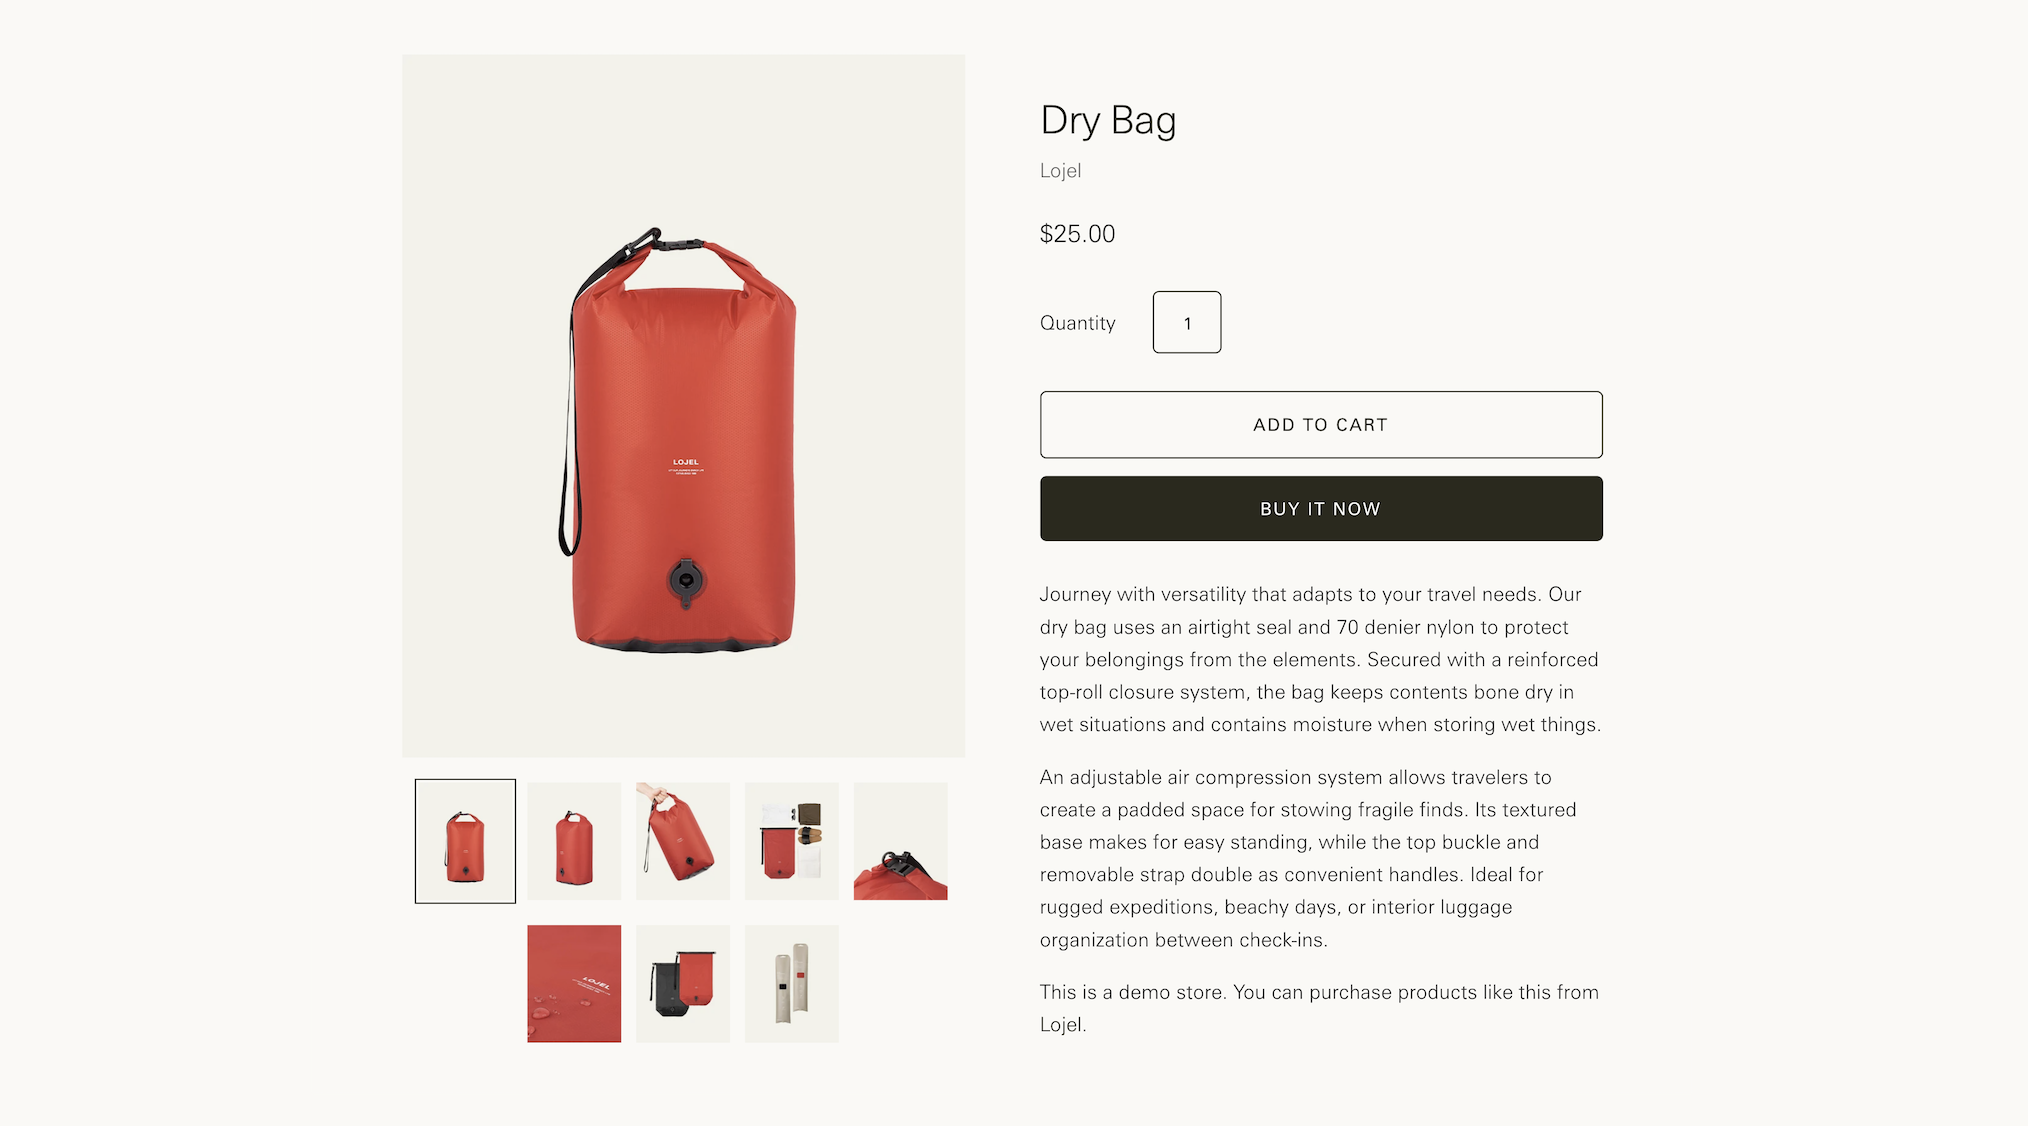 dry_bag_product_page_in_startup_travel_demo.png